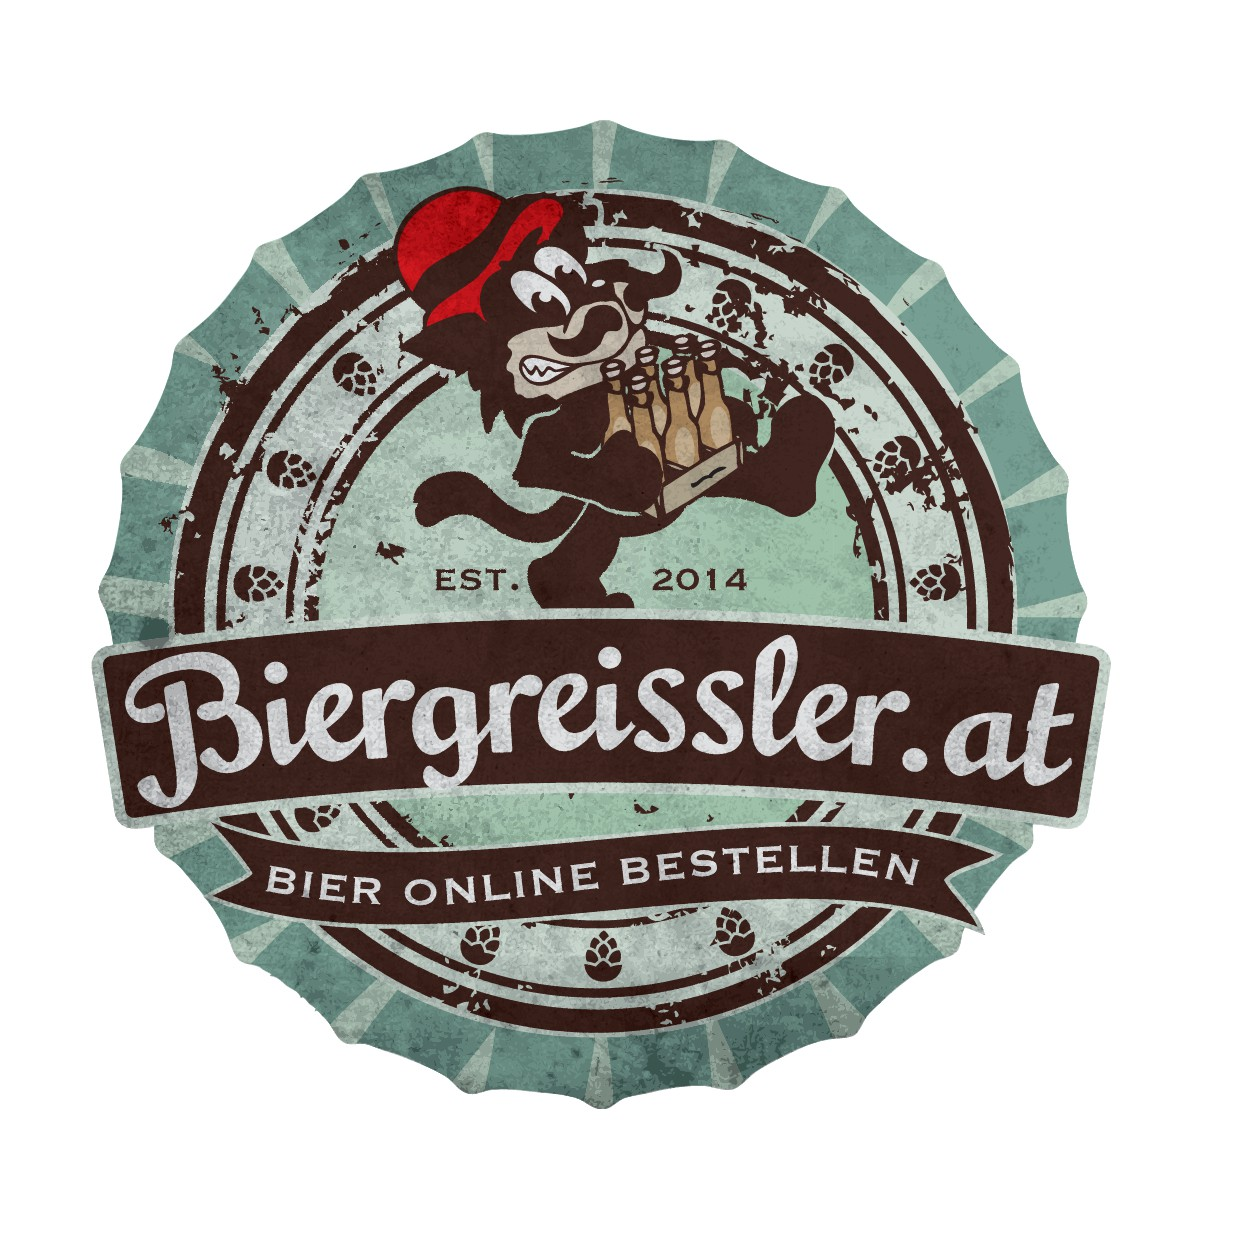 Create a Vintage/Shabby Chic Logo for a Beer Online Shop